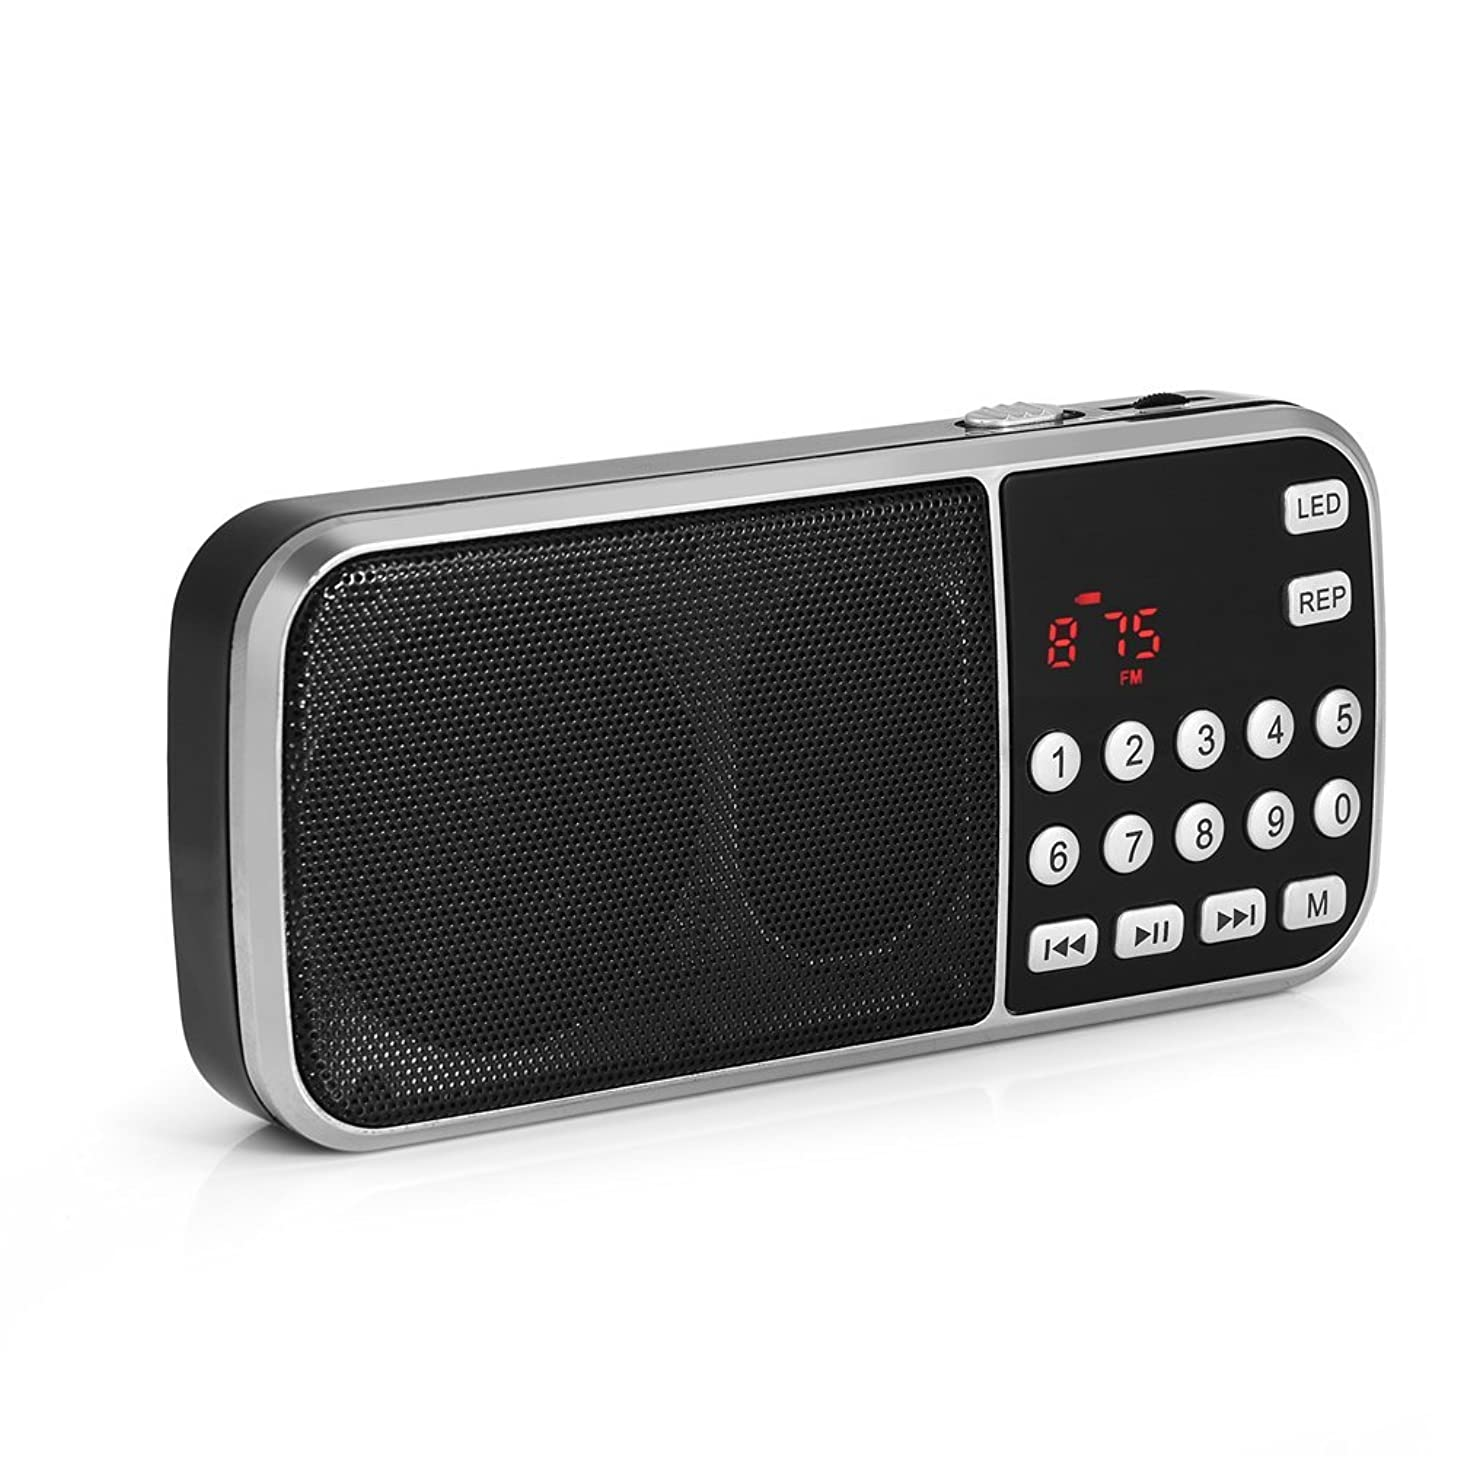 Zerone Y-501 Portable FM Radio, Digital FM Radio Audio Player with Rechargeable Li-ion Battery and LED Flashlight Support TF Card, U disk, MP3 Player